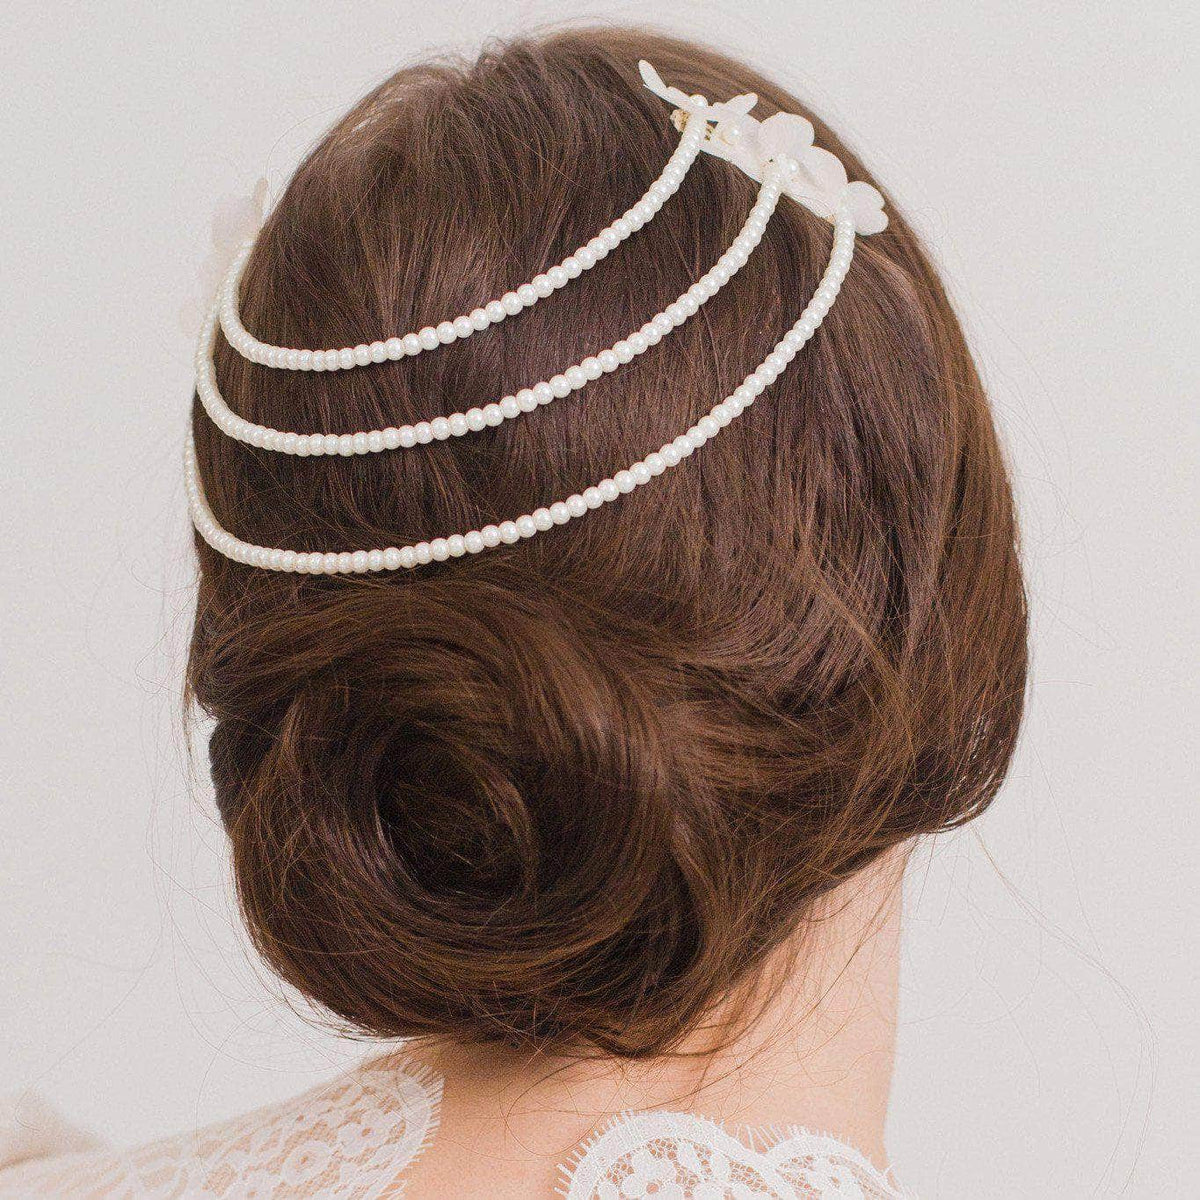 Wedding Hair Comb with Chains Silver Silk flower wedding hair combs with 3 pearl chains - 'Sansé'